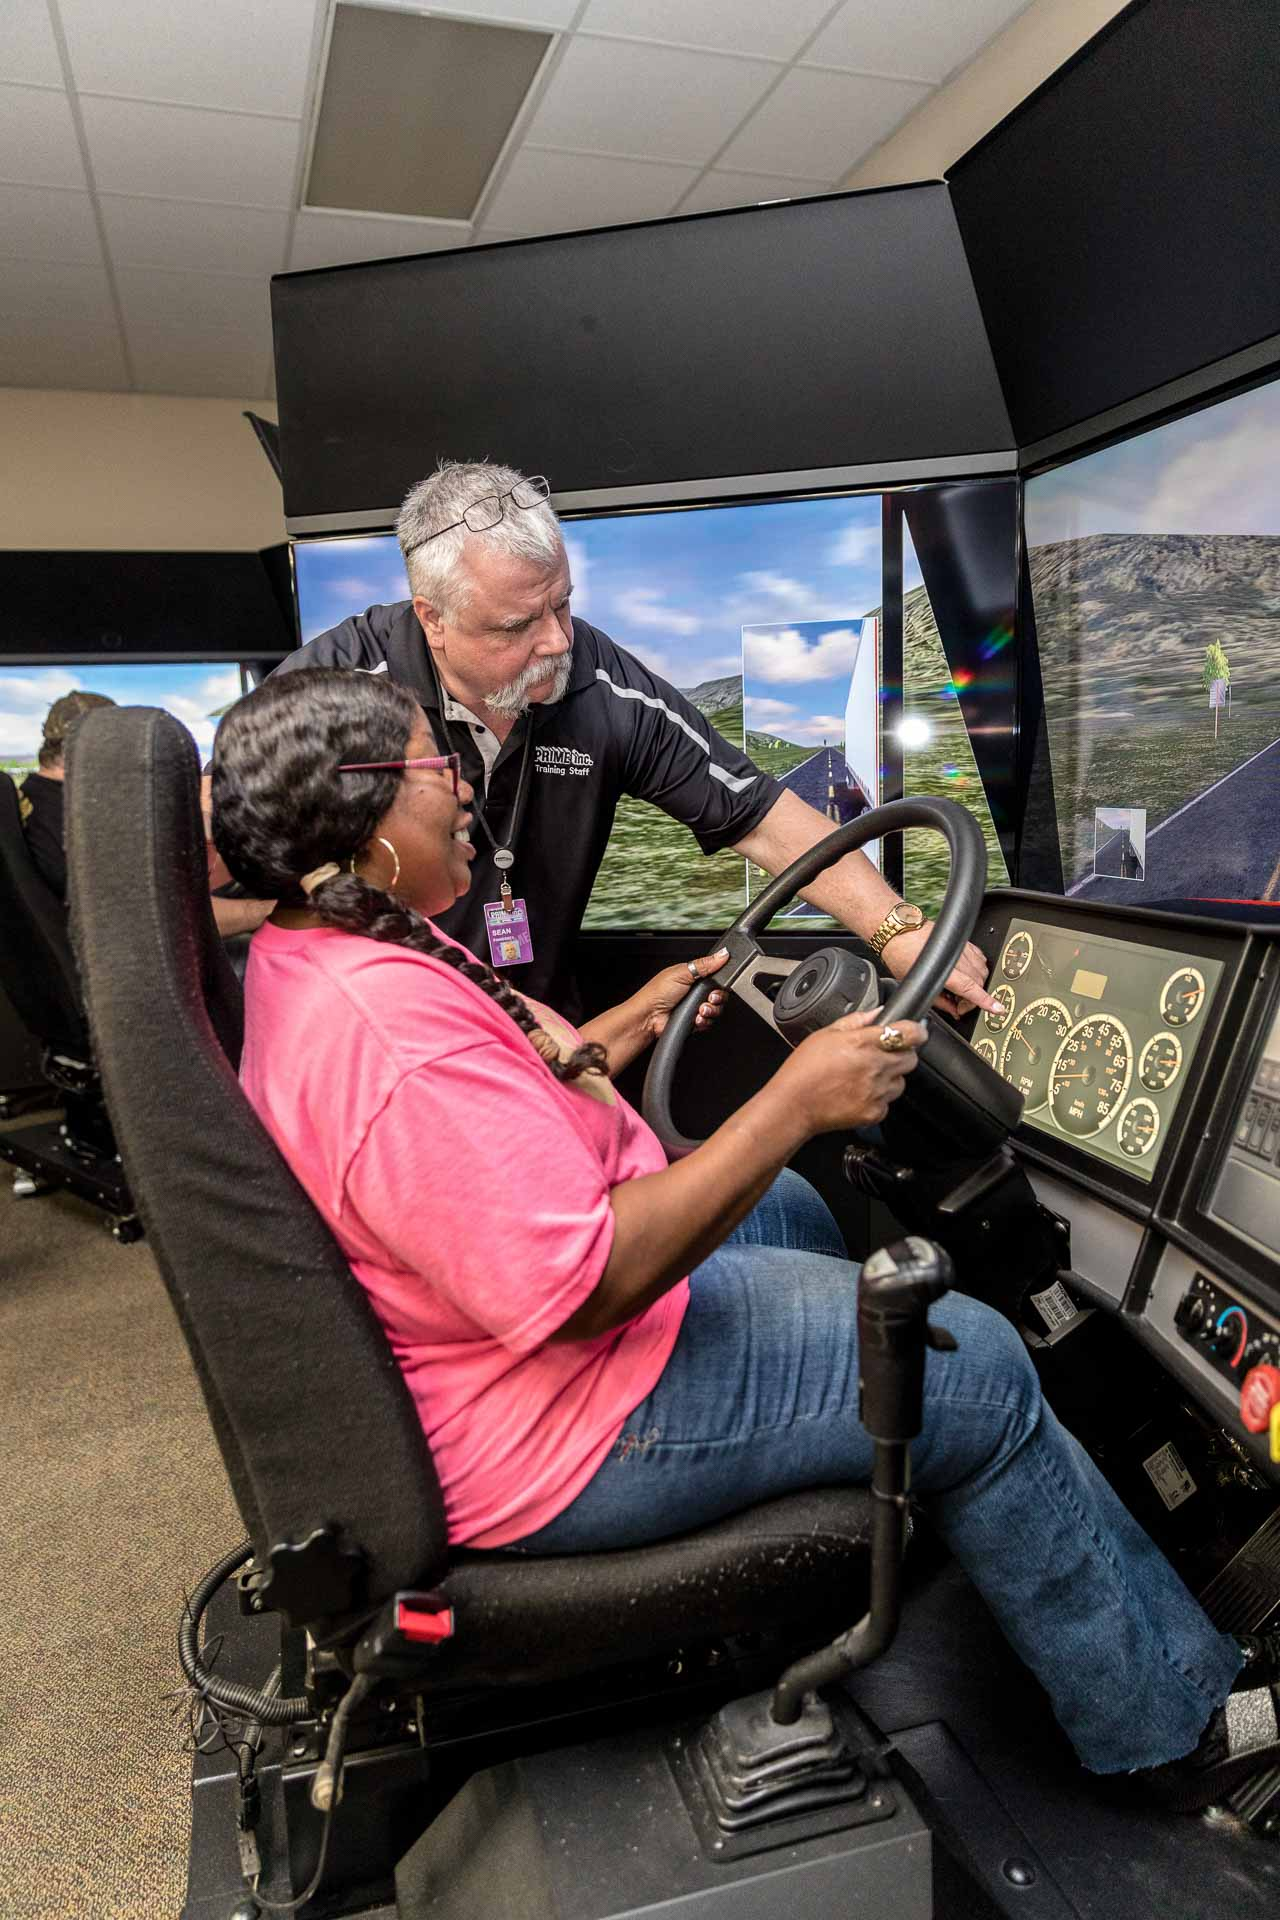 A Prime driving instructor showing a student driver something during a driving simulation.